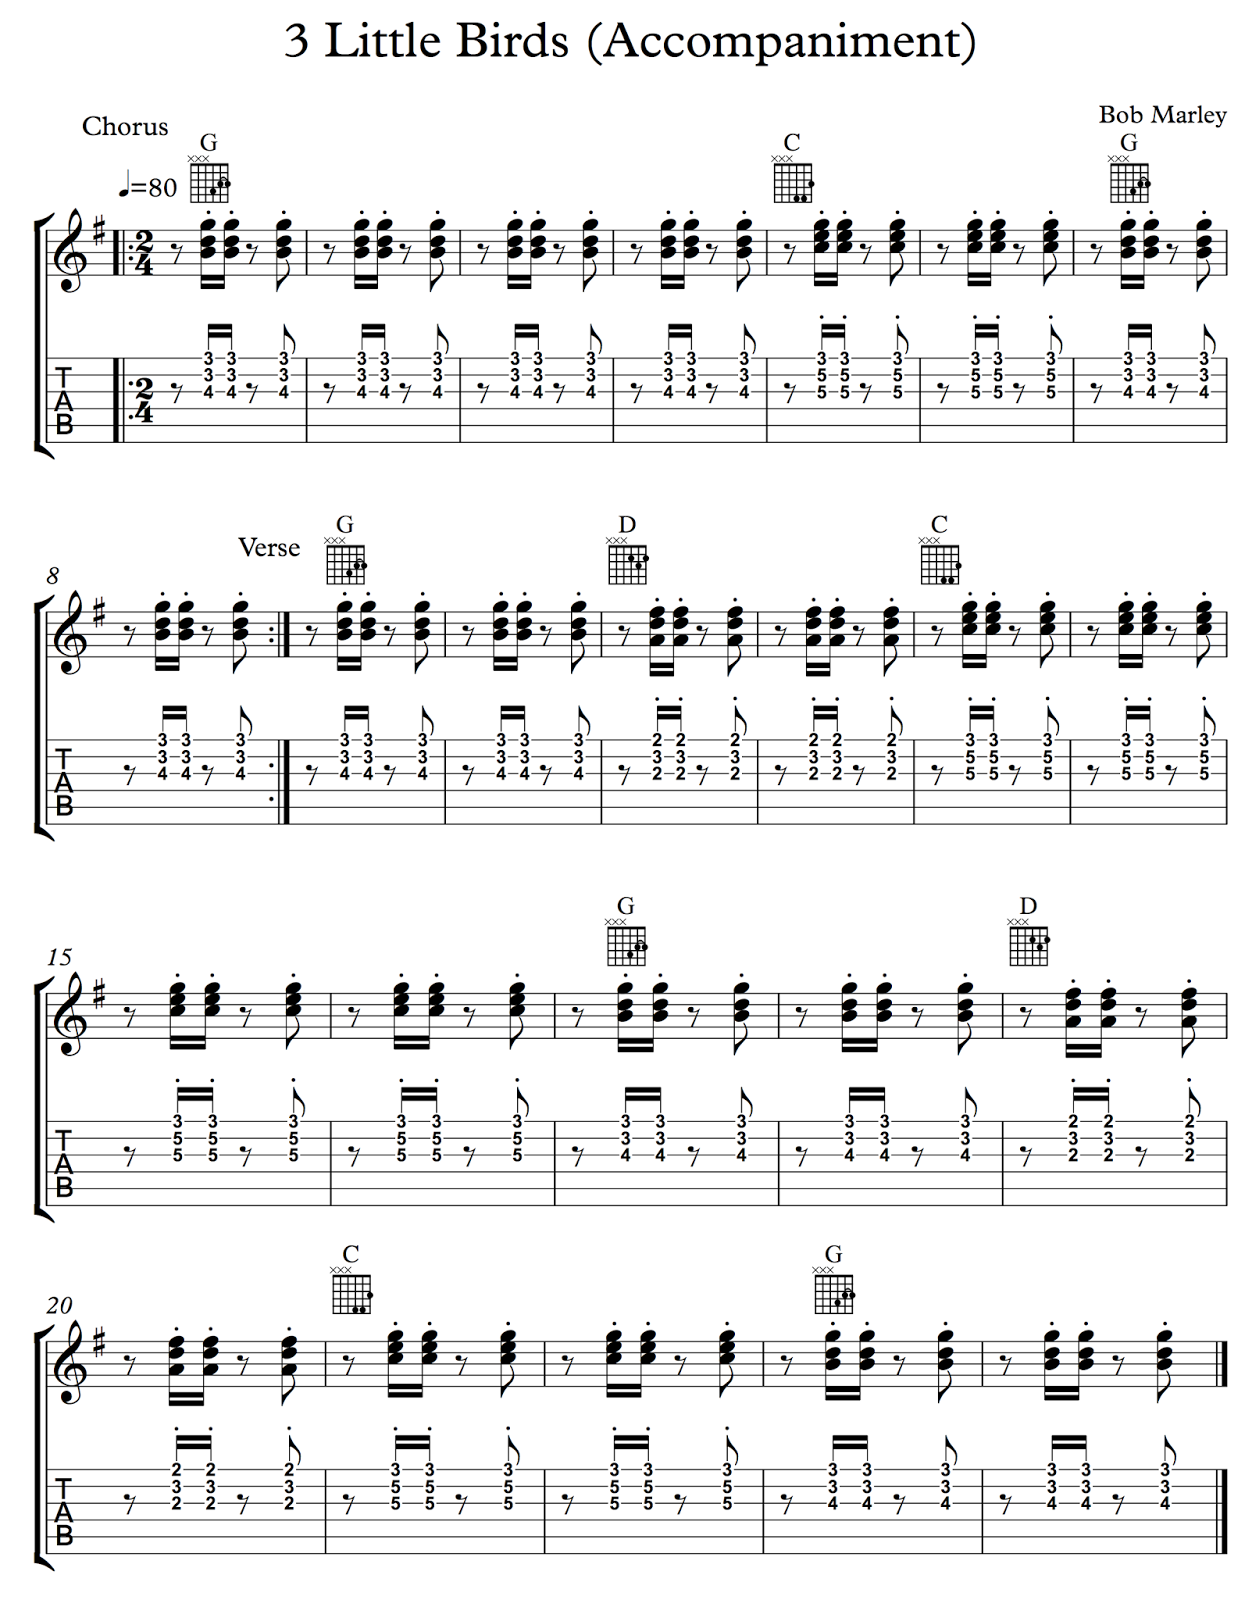 Ghs Guitar Partial Chords Reggae 3 Little Birds Somewhere Over